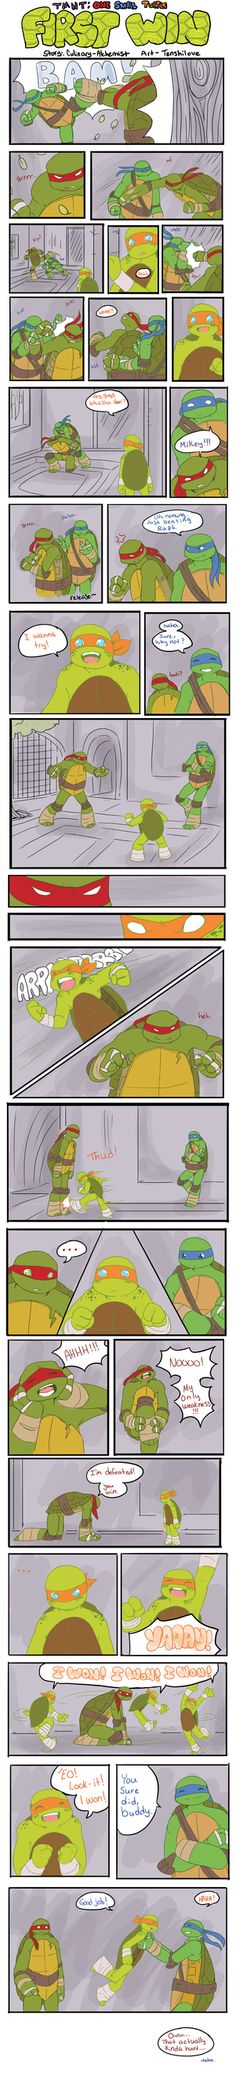 TMNT: One Small Turtle : First Win by *Tenshilove on deviantART